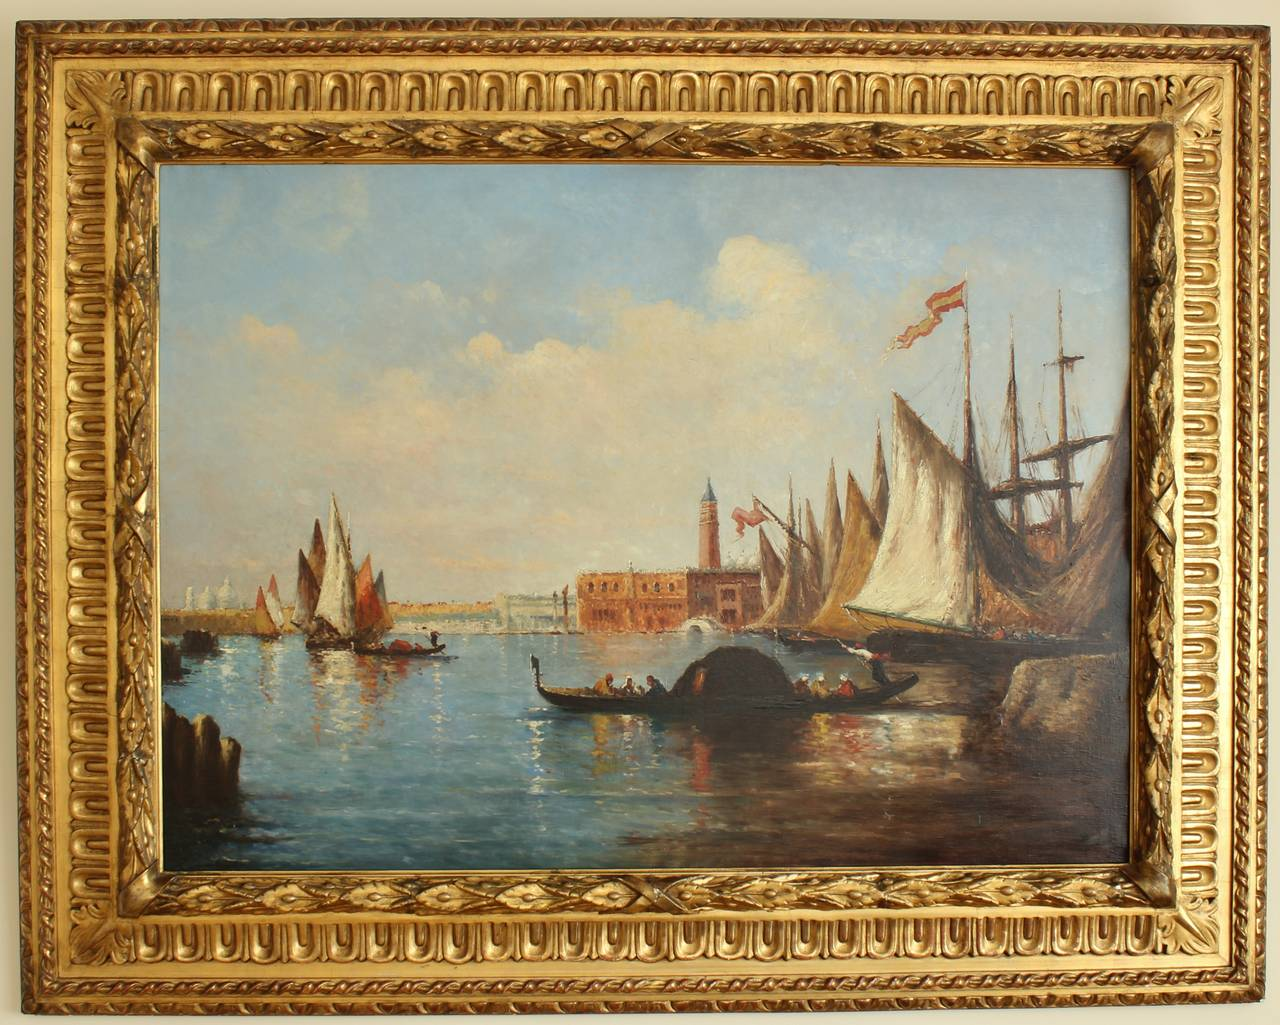 Beautiful composition representing gondolas withPiazza San MarCo in distance. Impressionist painting expressing the luminosity and magic of Venice, its sky and its lagoon. Oil on canvas in its original and striking monumental giltwood frame. Ca.